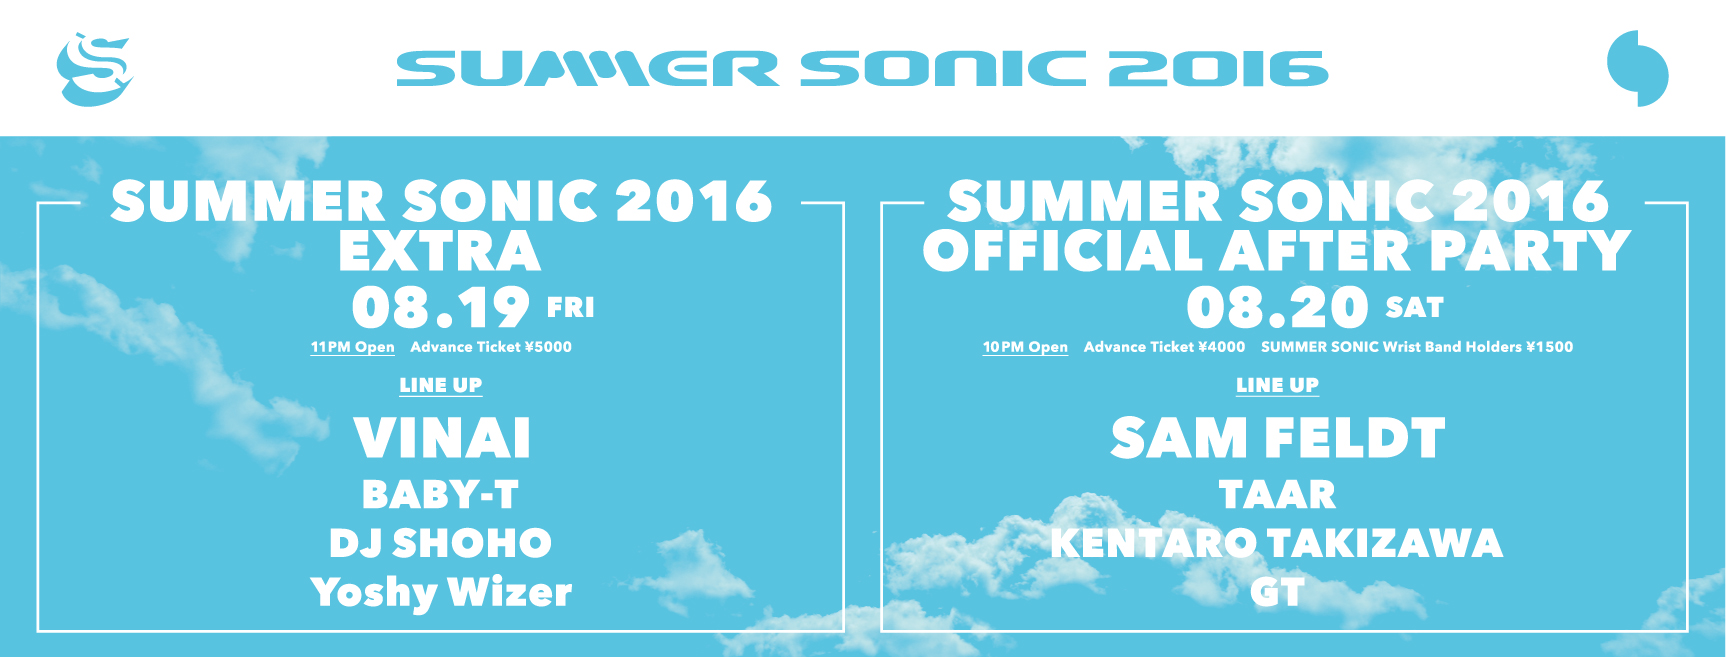 SUMMER SONIC 2016 party